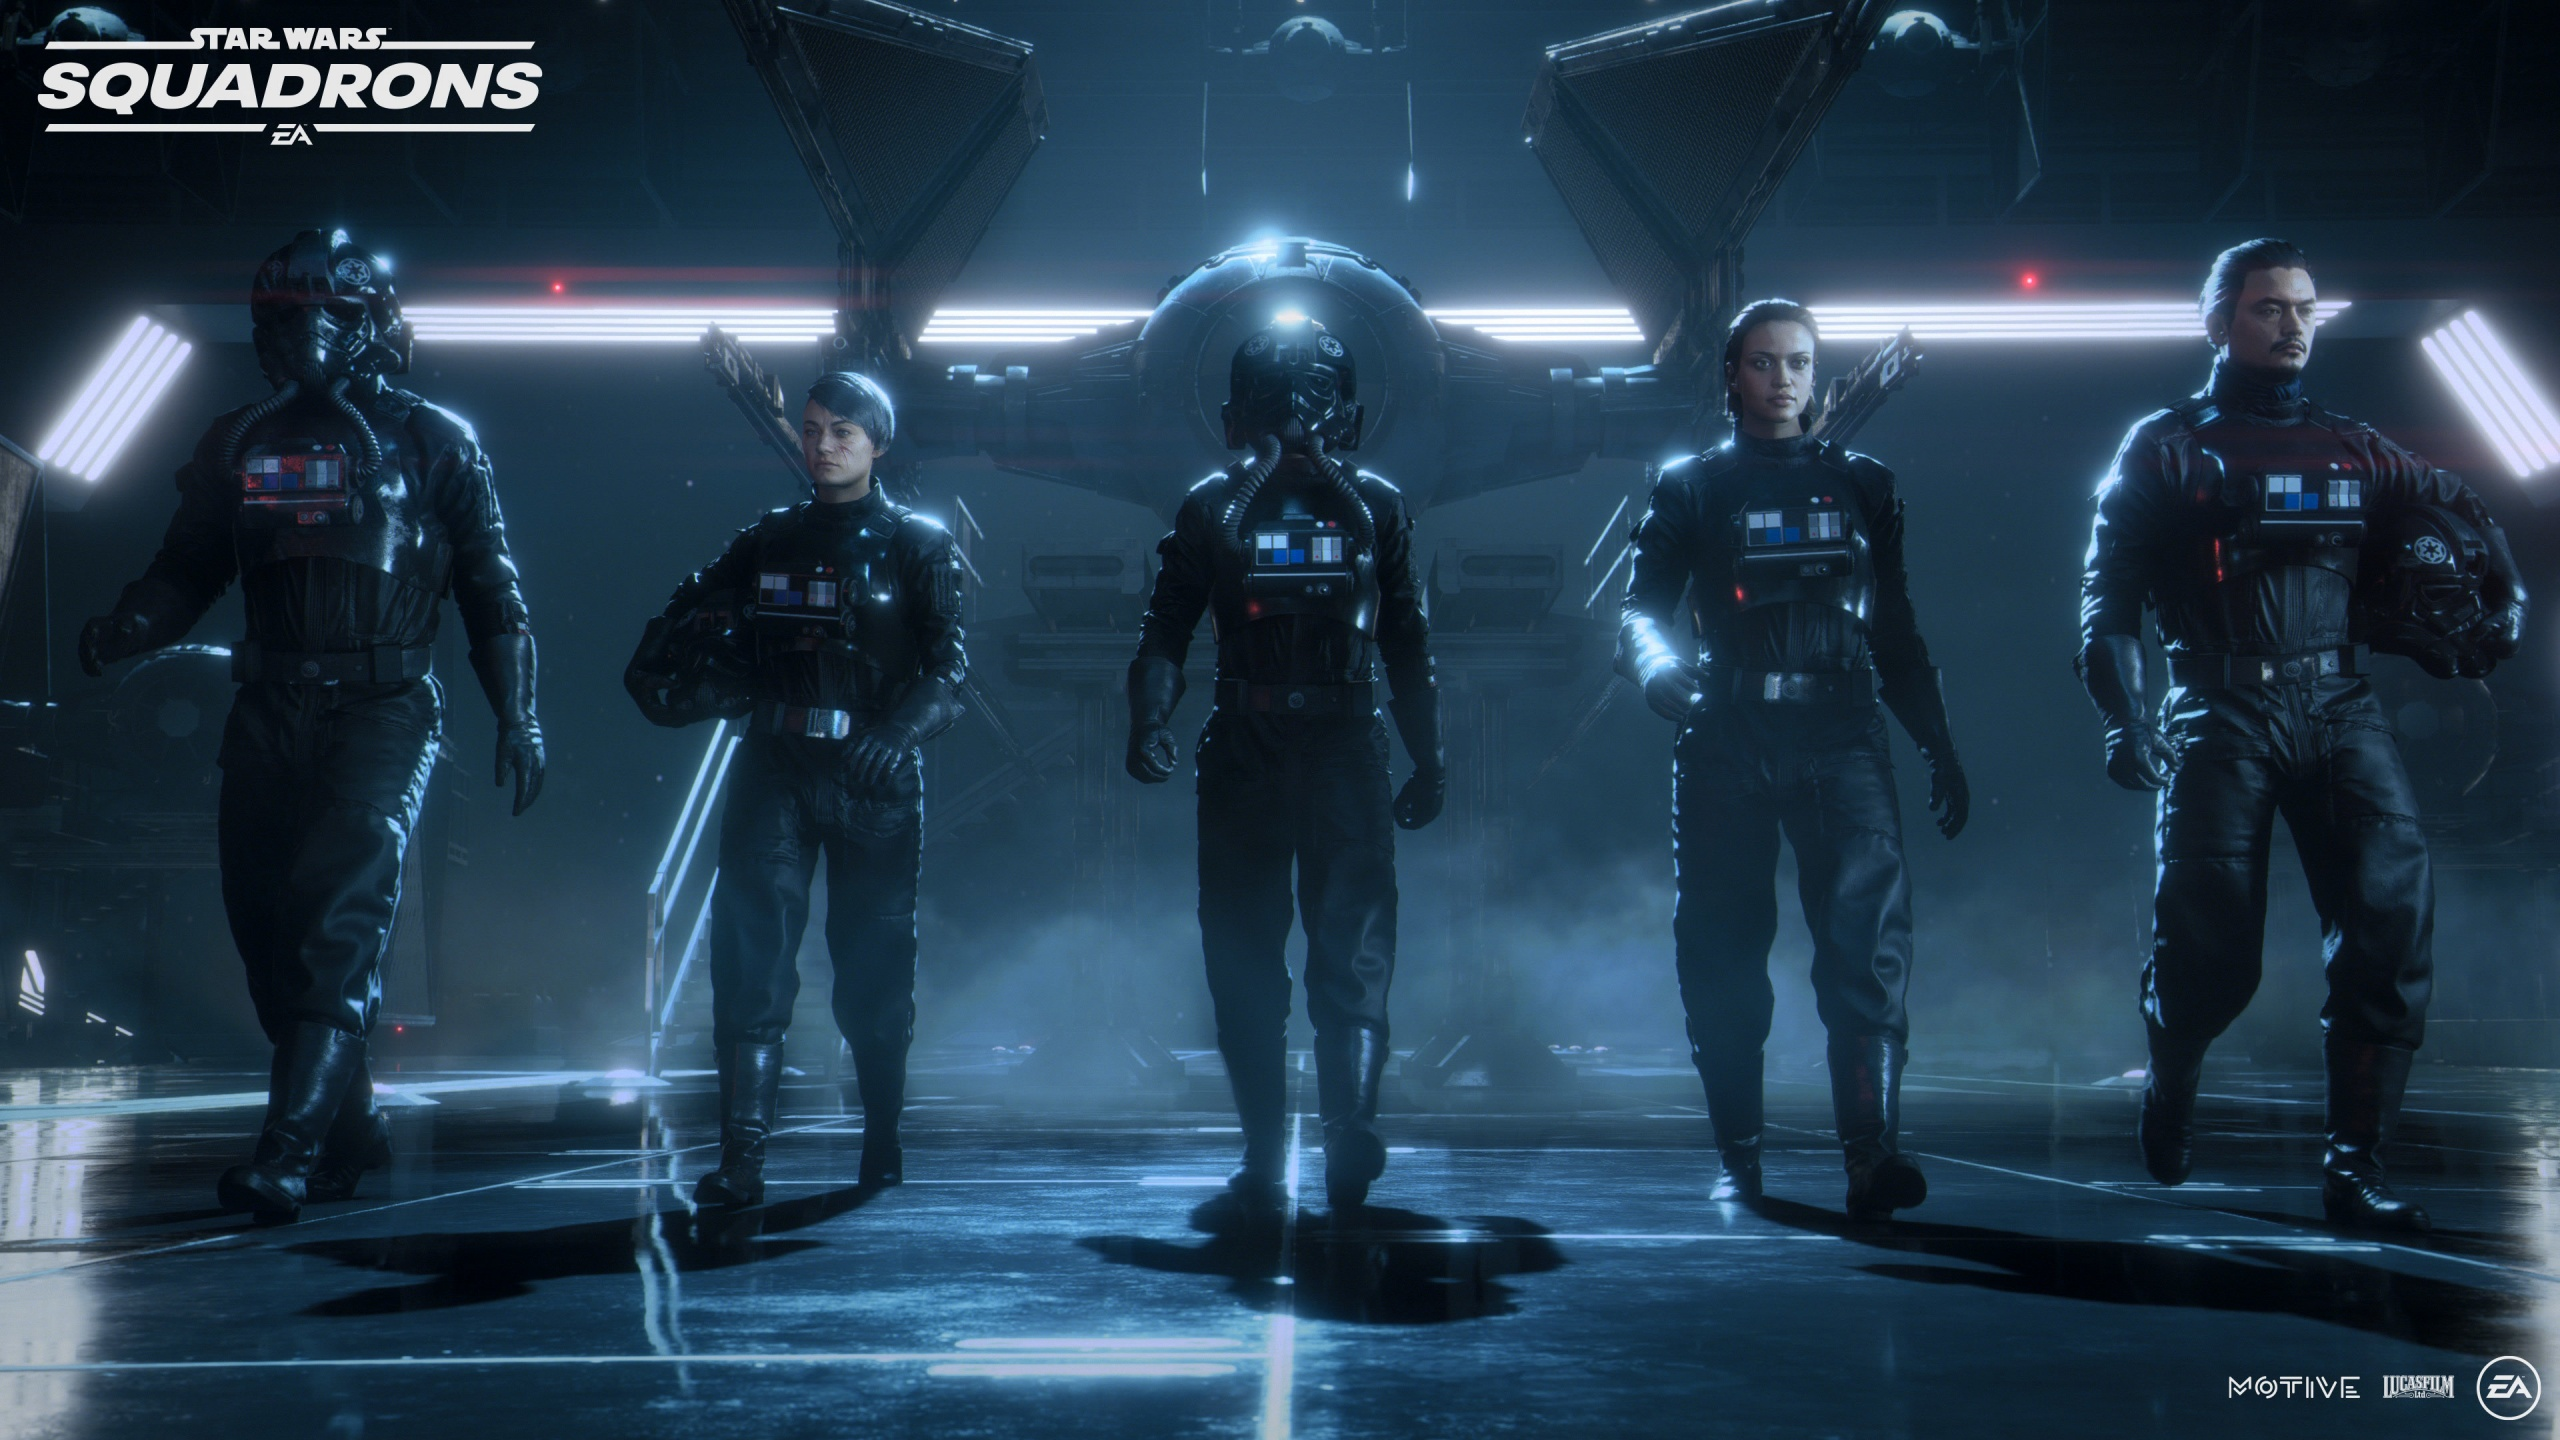 Star Wars Squadrons 4k Wallpaper Titan Squadron Starfighter Squadron Pc Games Playstation 4 Xbox One Games 1875